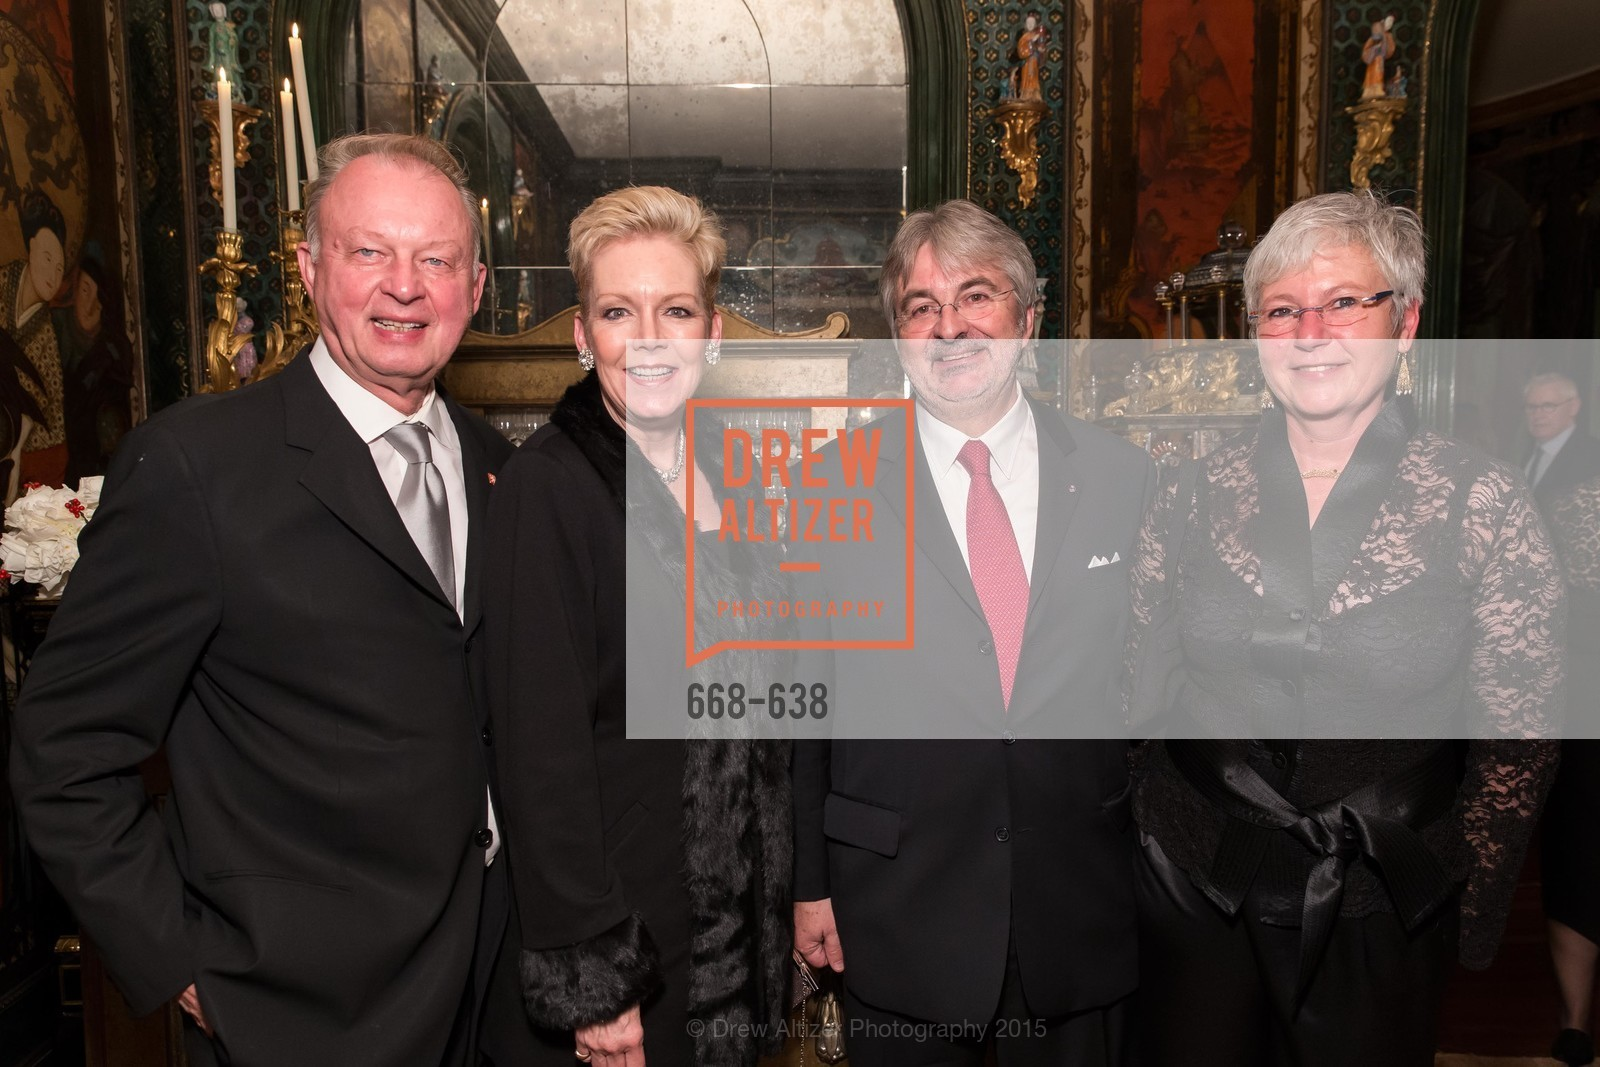 Richard Pivnicka, Barbara Pivnicka, George Schmit, Huguette Wildschutz, San Francisco Mayor's Office of Protocol Christmas Party, Private Residence, December 9th, 2015,Drew Altizer, Drew Altizer Photography, full-service agency, private events, San Francisco photographer, photographer california